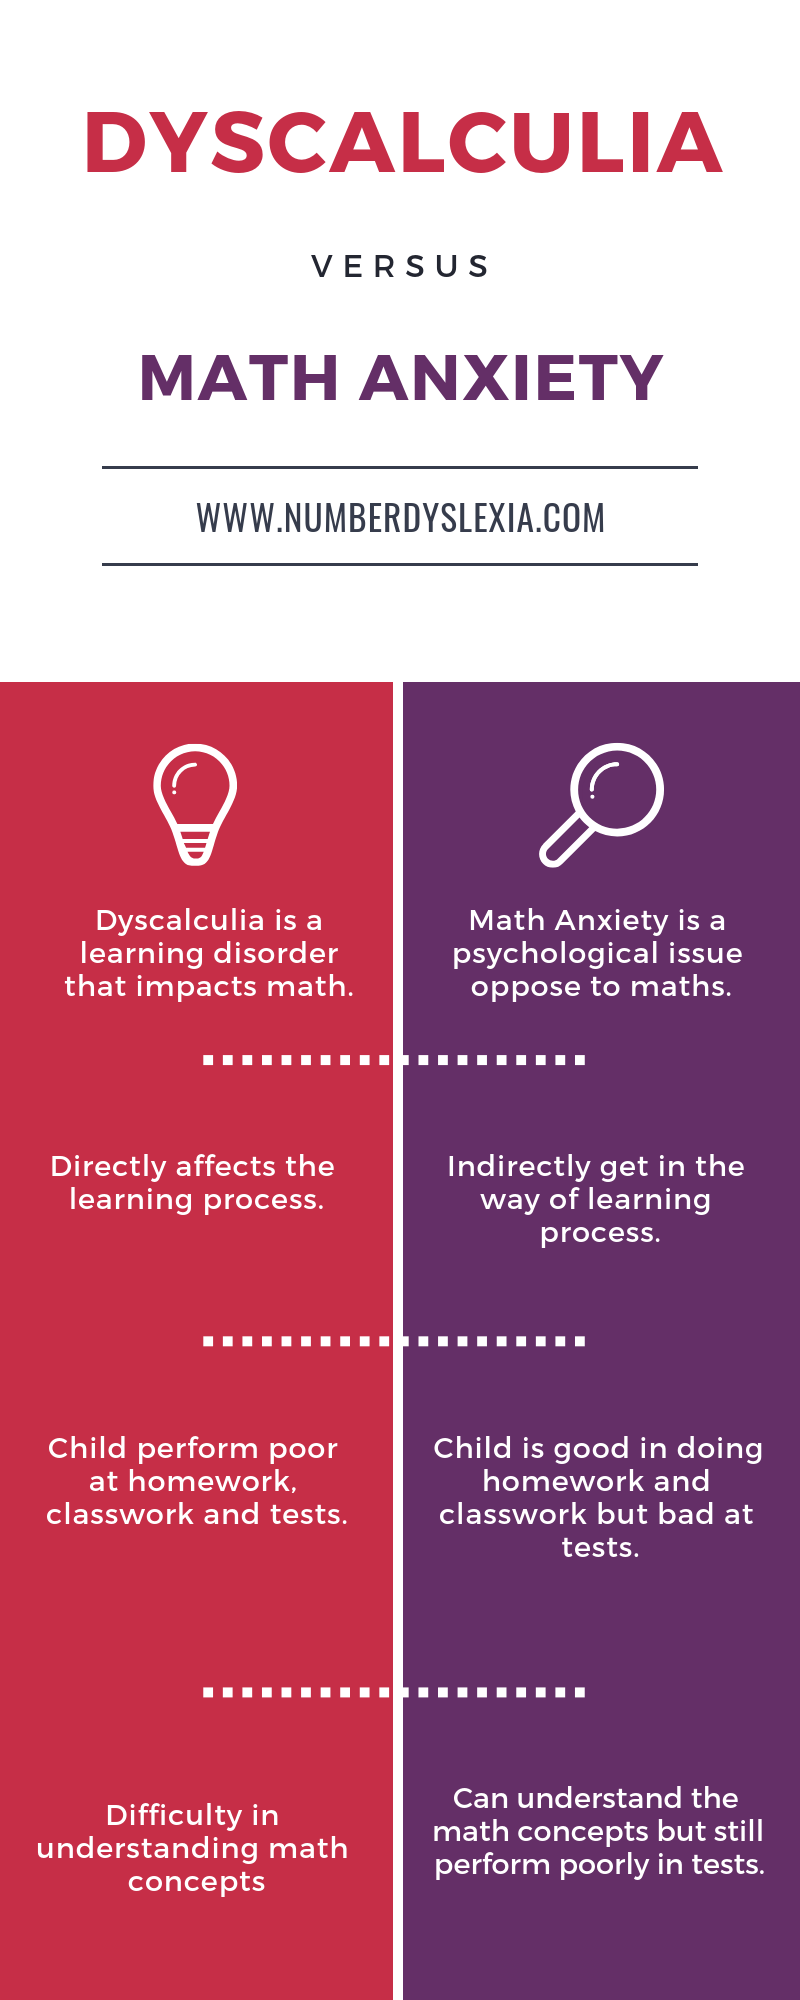 difference between dyscalculia and math anxiety